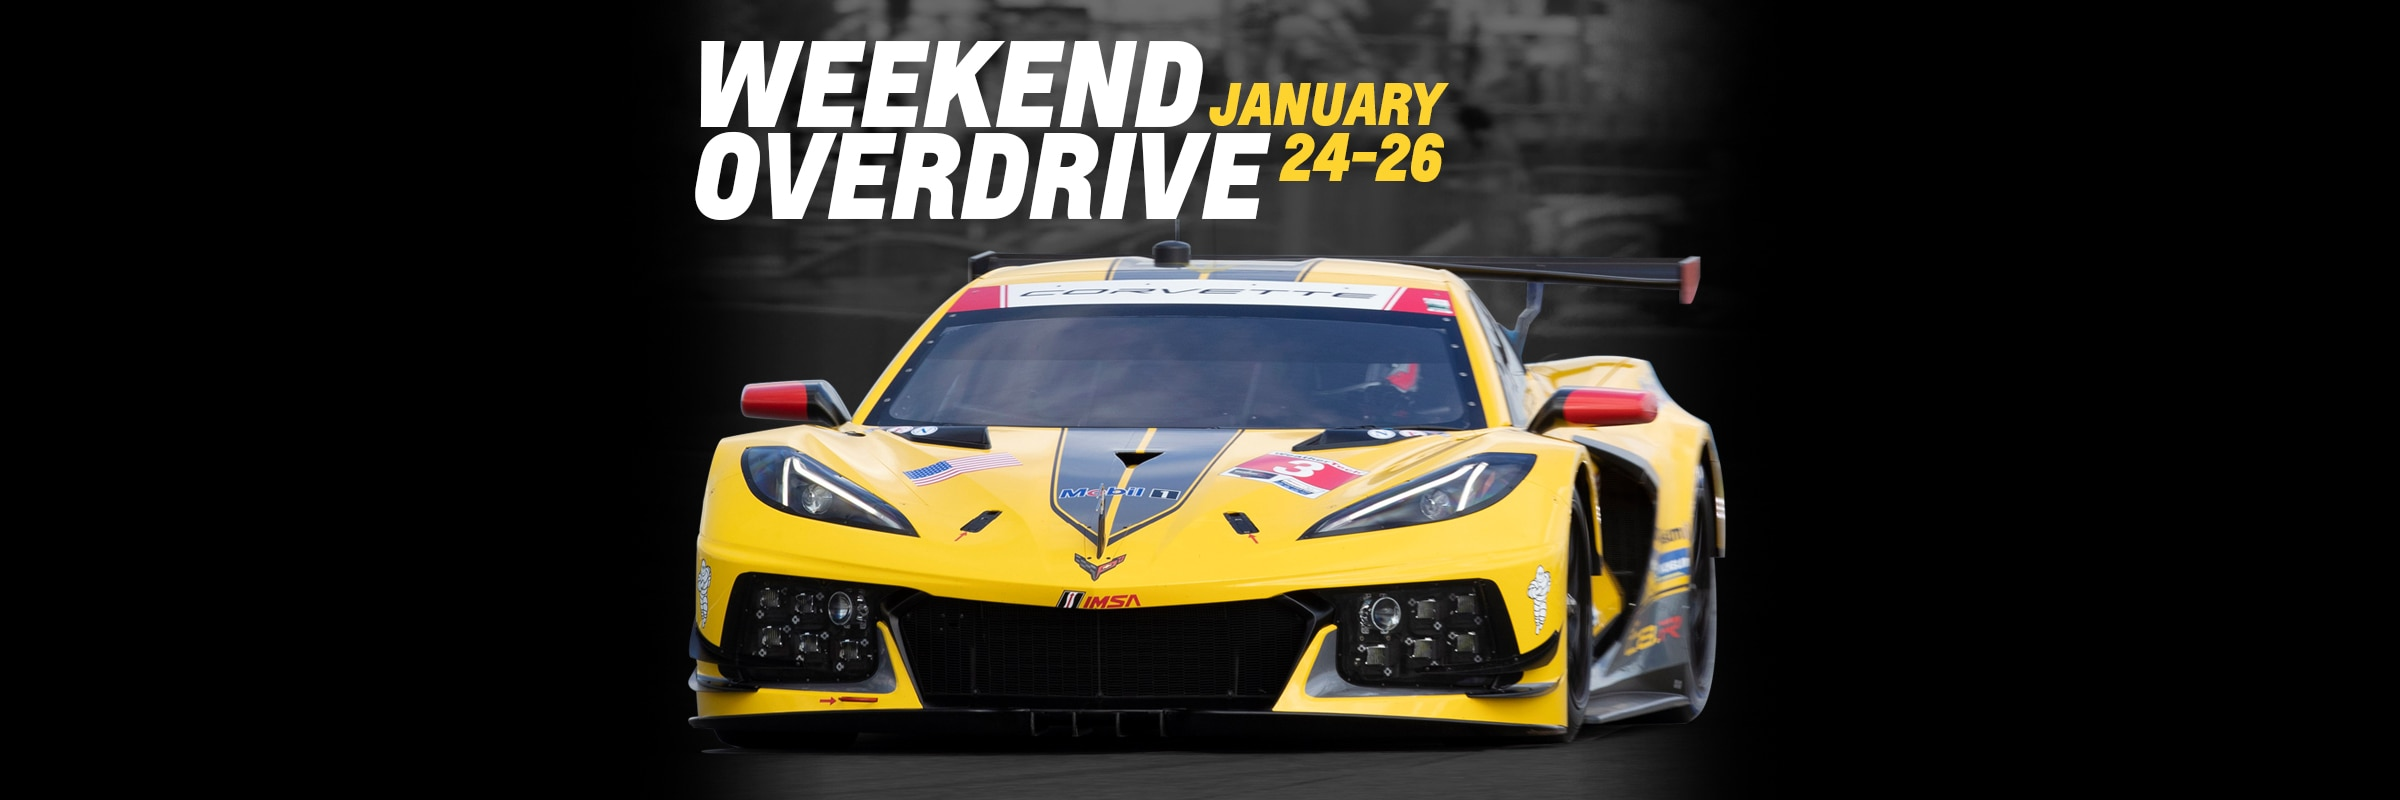 Racing, Motorsports, Chevy, Chevrolet, Chevrolet Performance, Schedule, Events, TV, Team Chevy, IMSA, IMSA WeatherTech SportsCar Championship, Rolex 24, Rolex 24 at Daytona, Daytona International Speedway